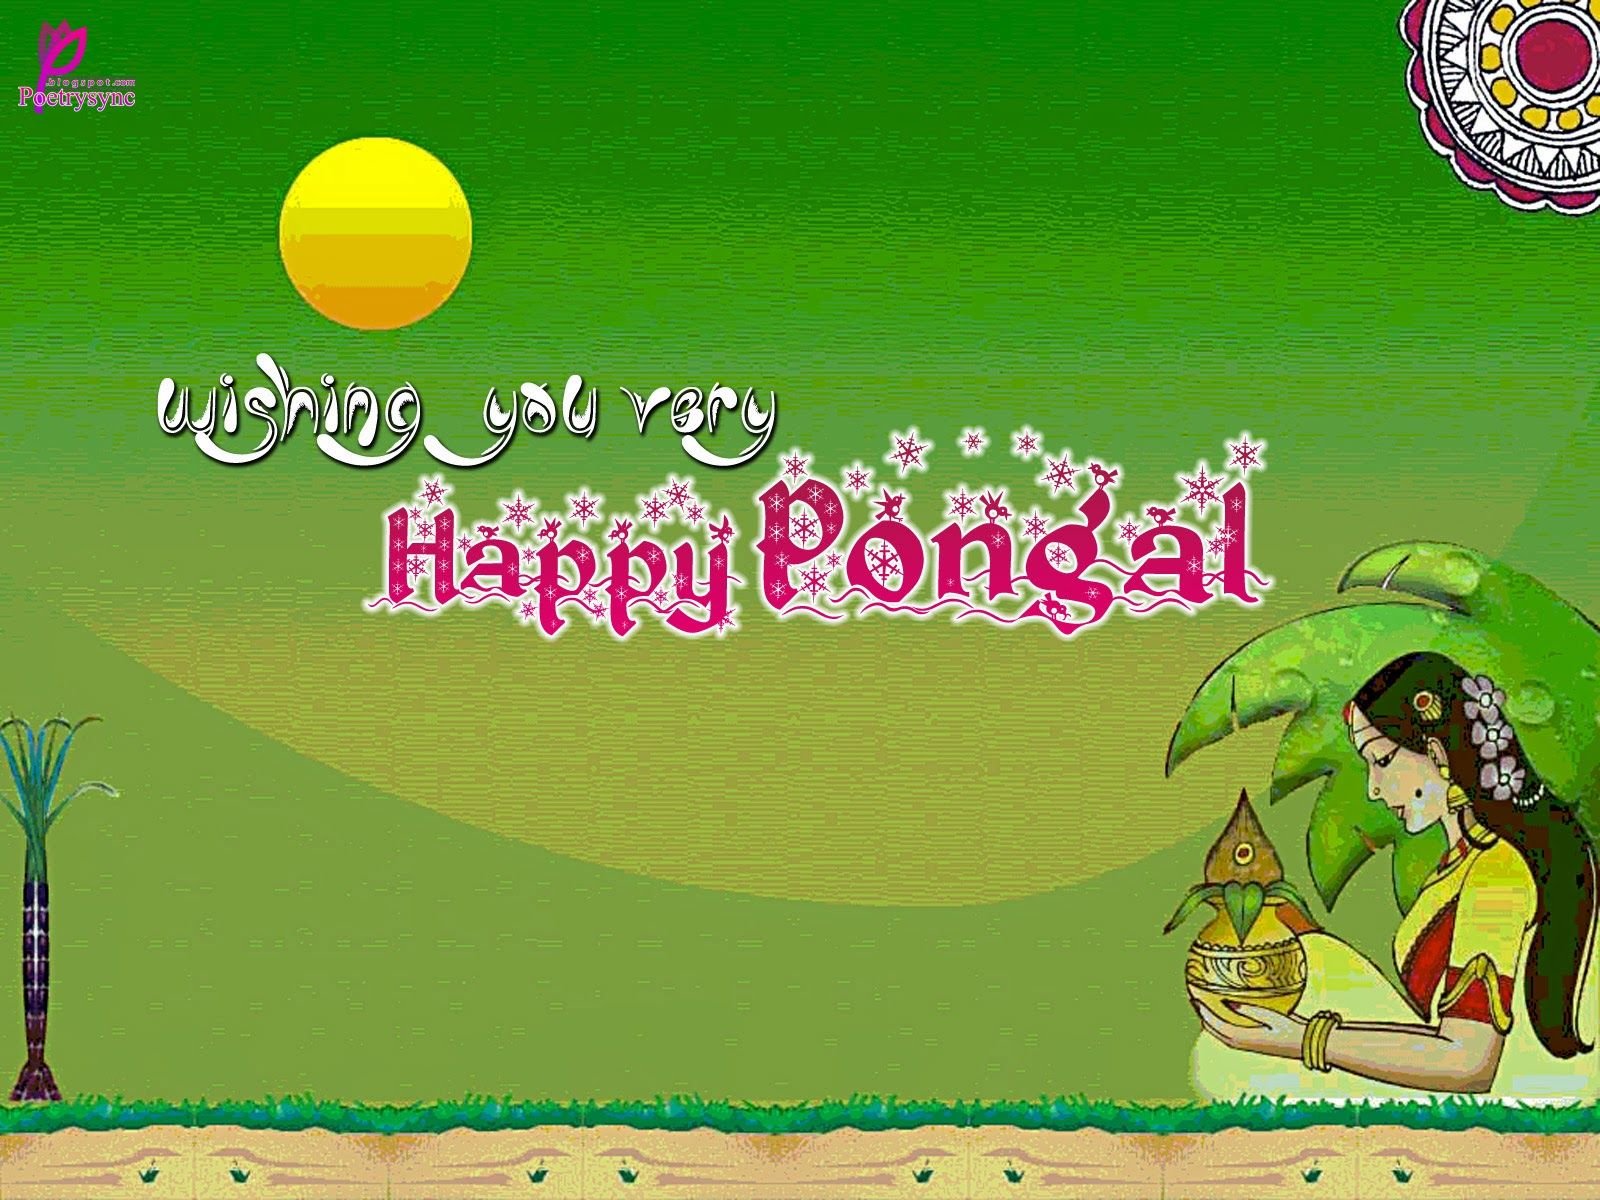 pongal festival essay Pongal,pongal 2019,pongal day,pongal festival india — pongal - pongal, pongal 2019, pongal day essay on the indian festivals - publish your articles — a festival is a celebration of life.